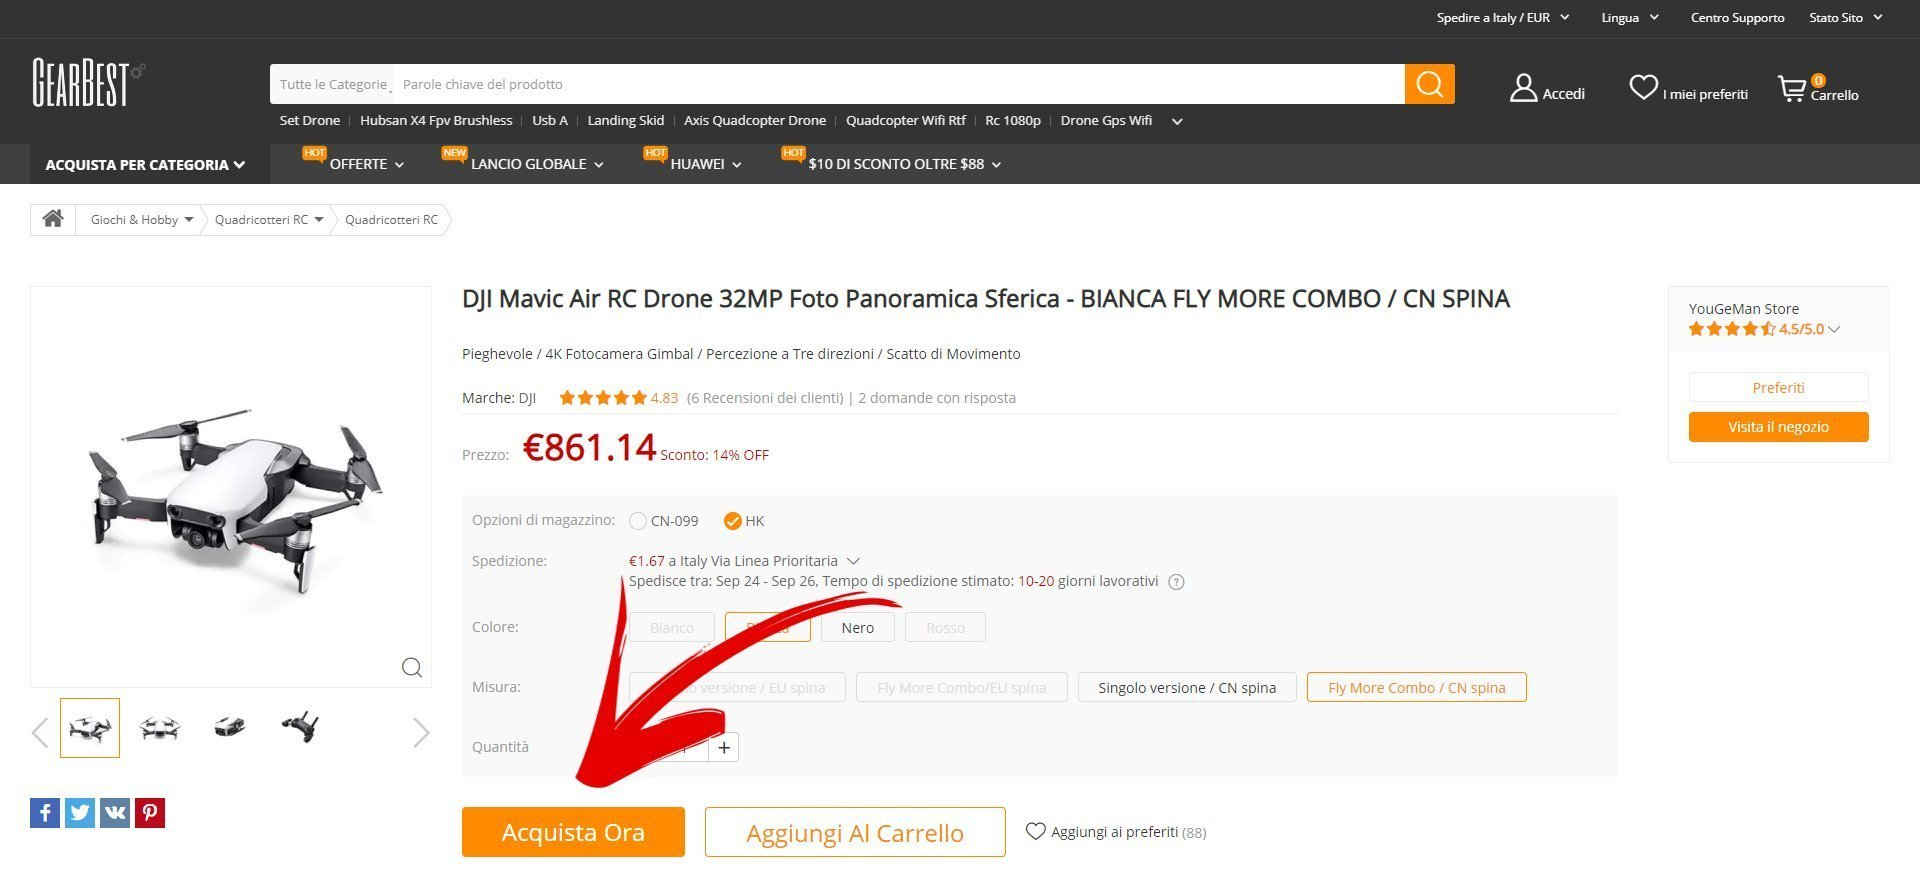 Come usare i coupon di gearbest